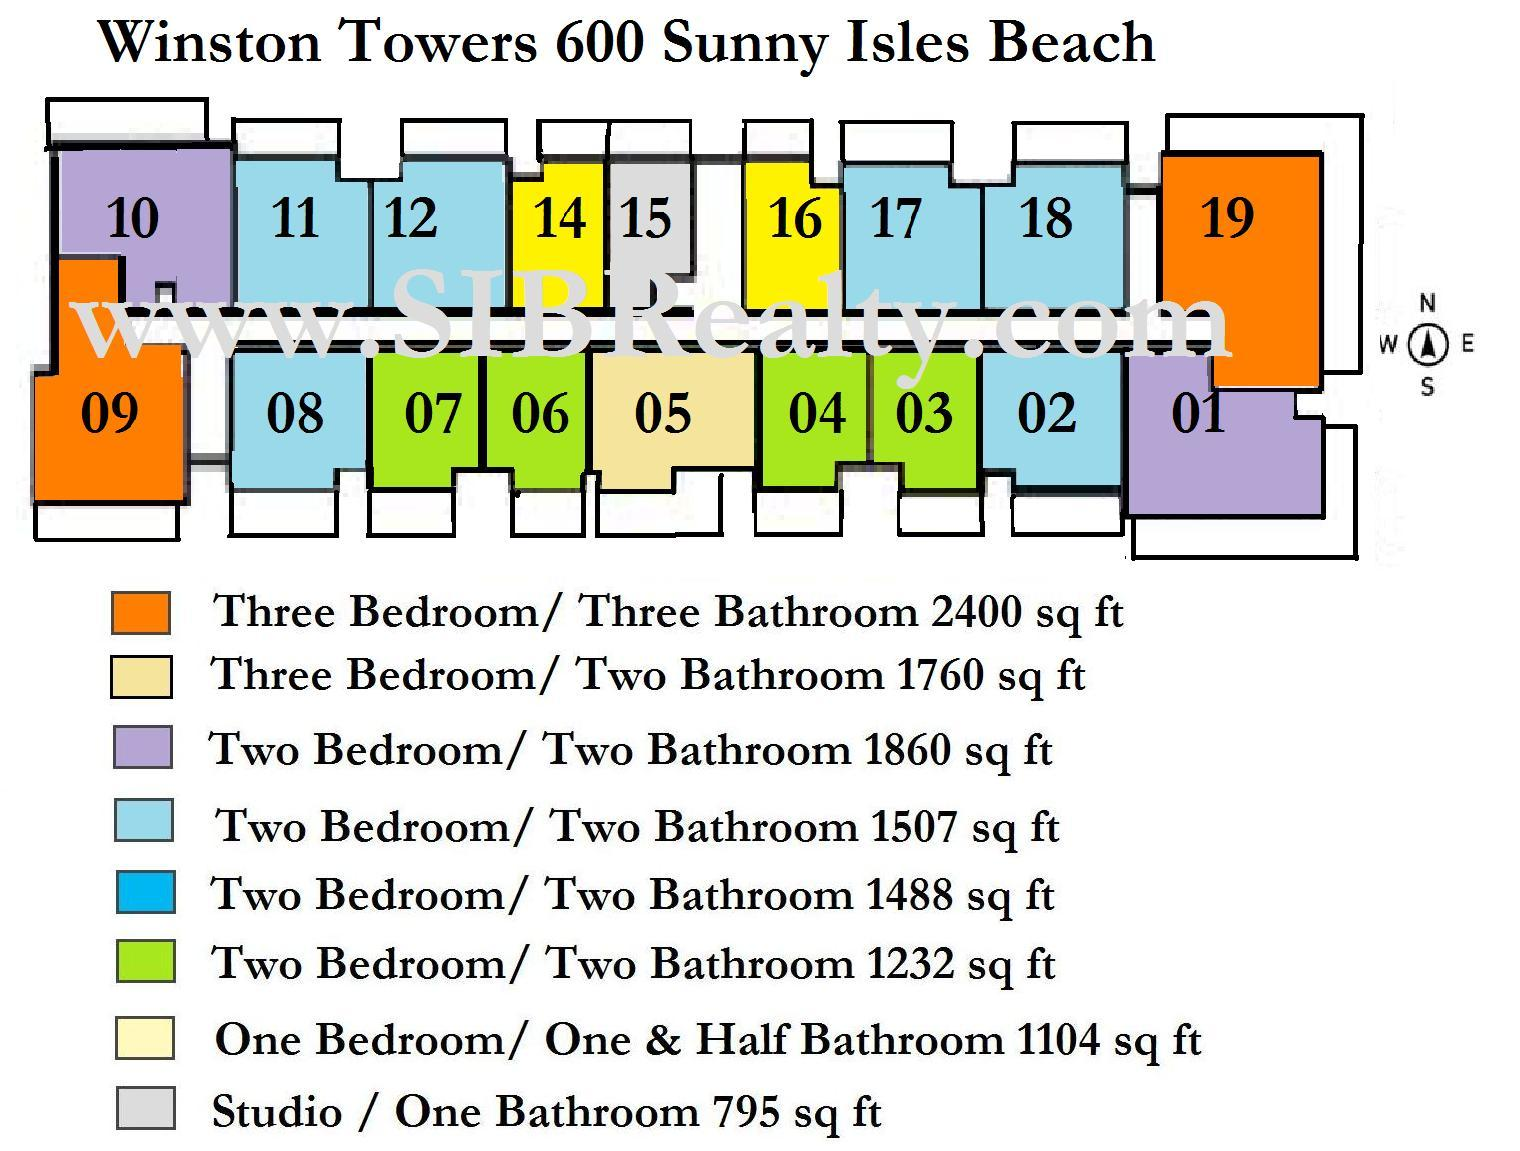 Site Plan Winston Towers 600 Sunny Isles Beach